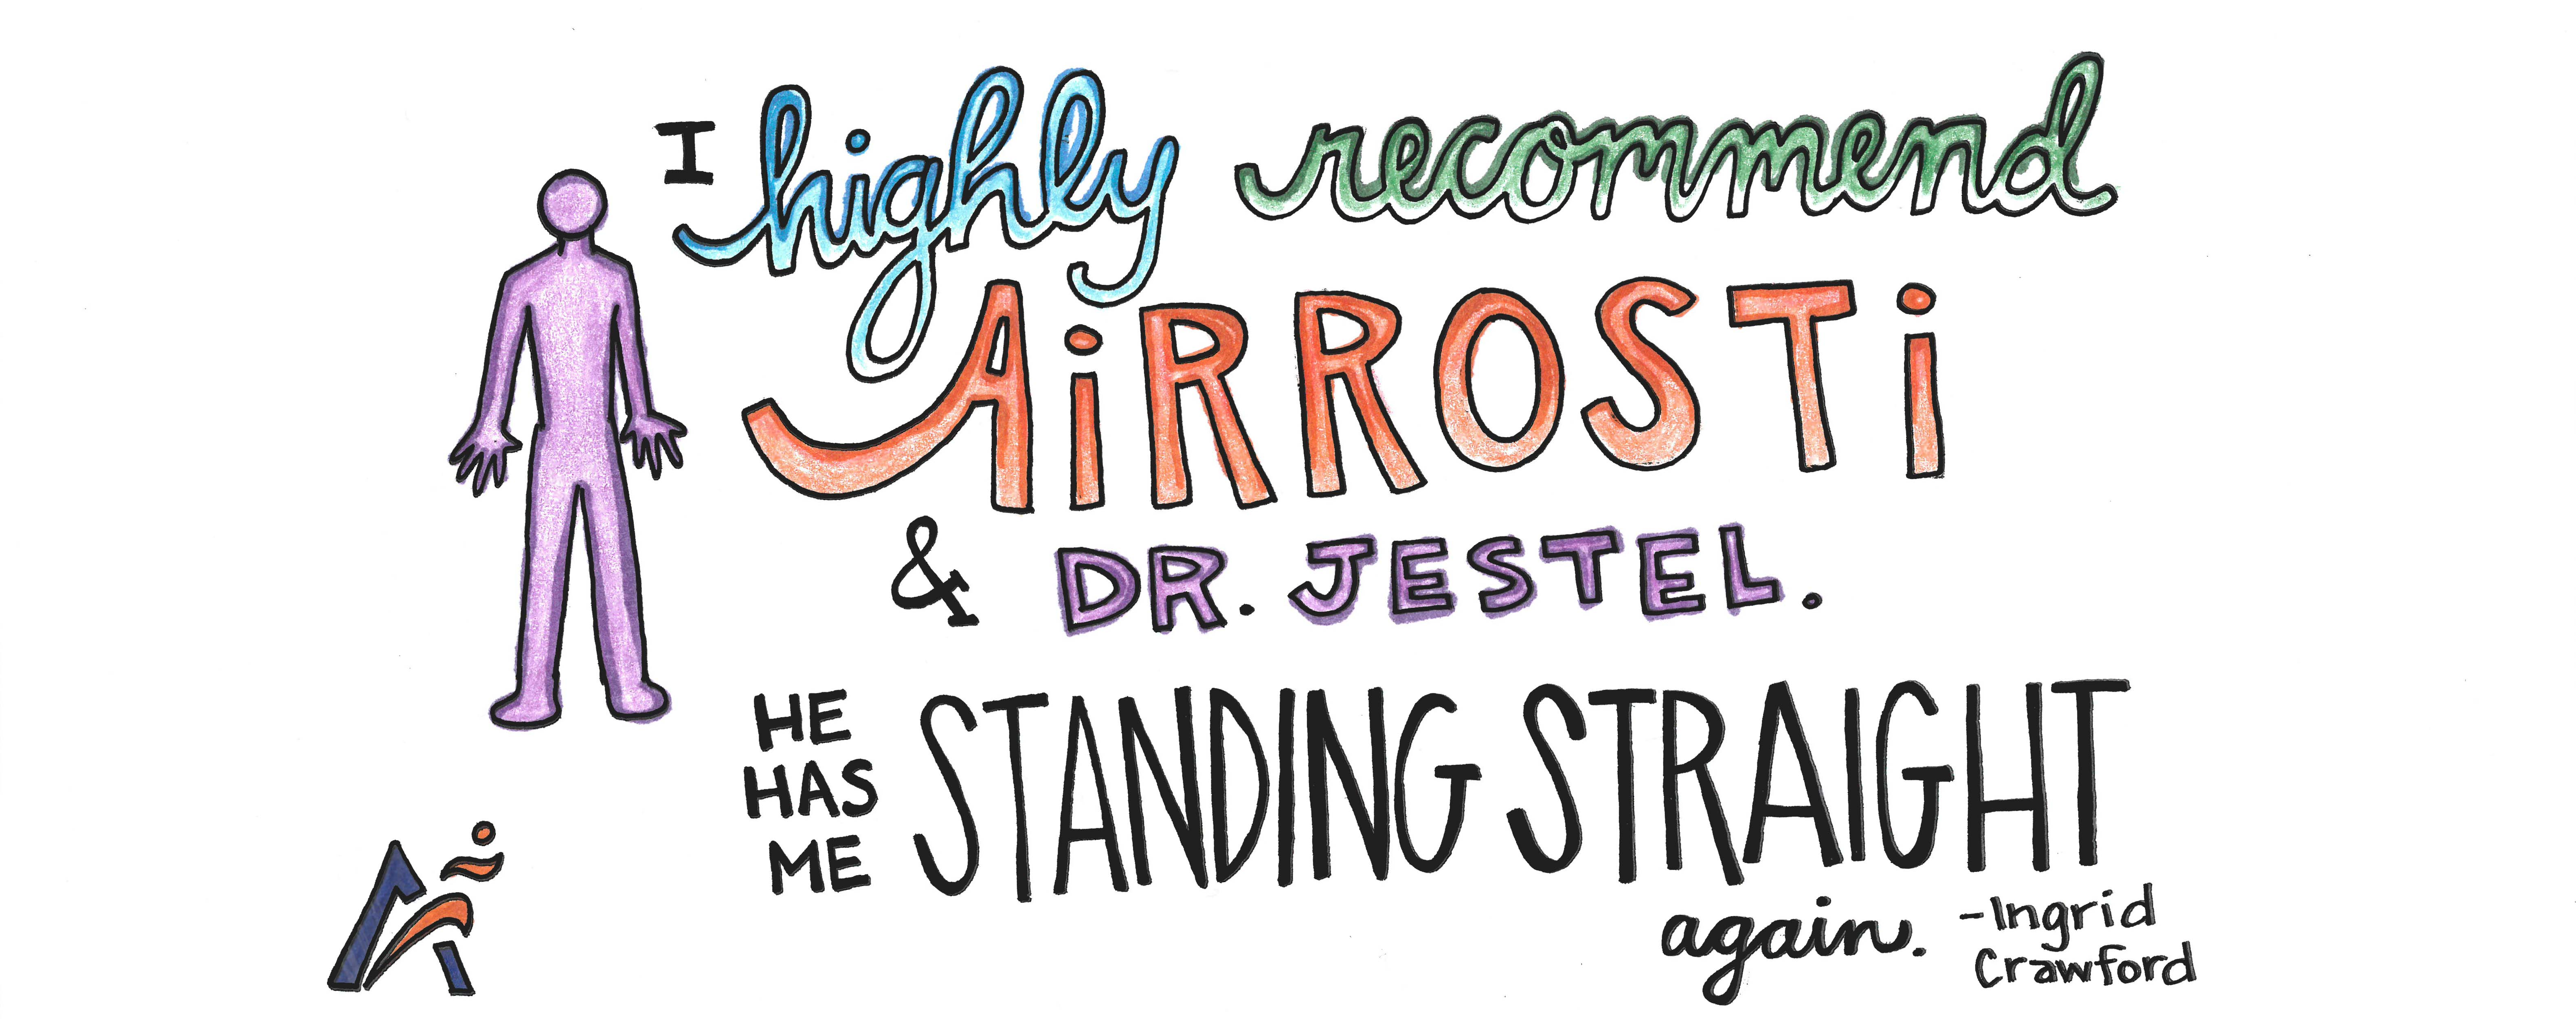 I highly recommend Airrosti and Dr. Jestel